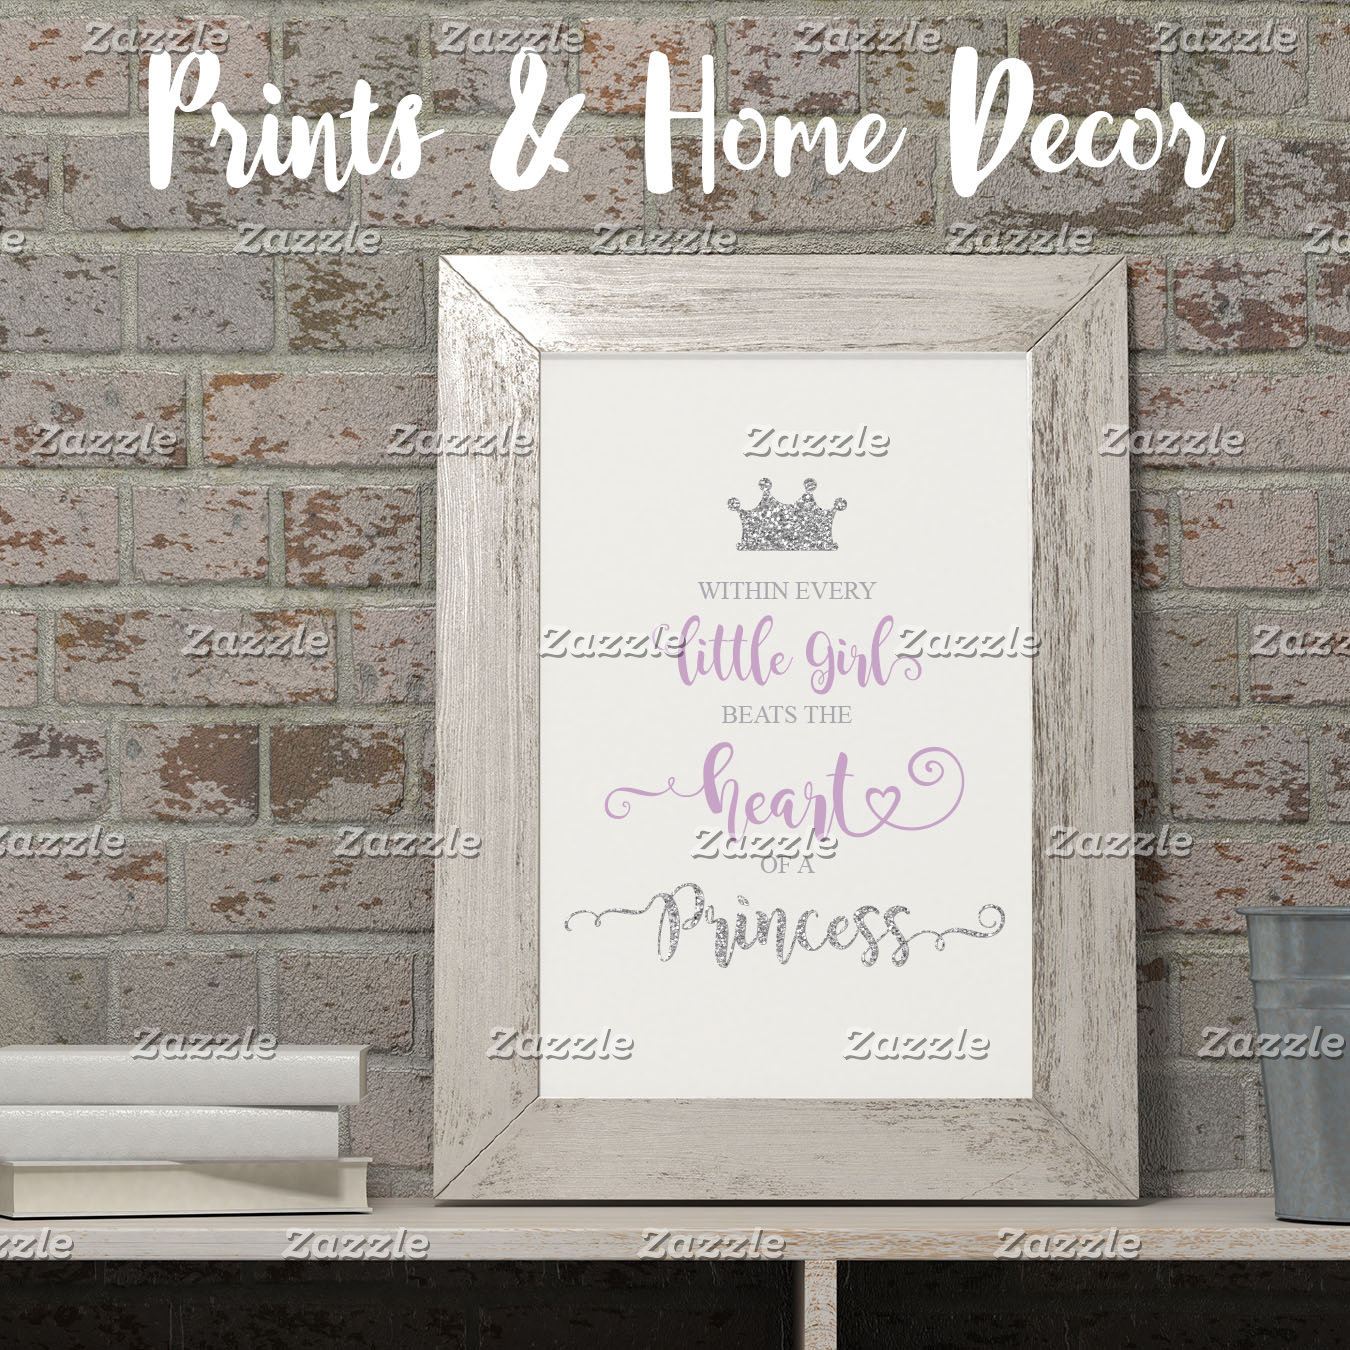 Prints & Home Decor